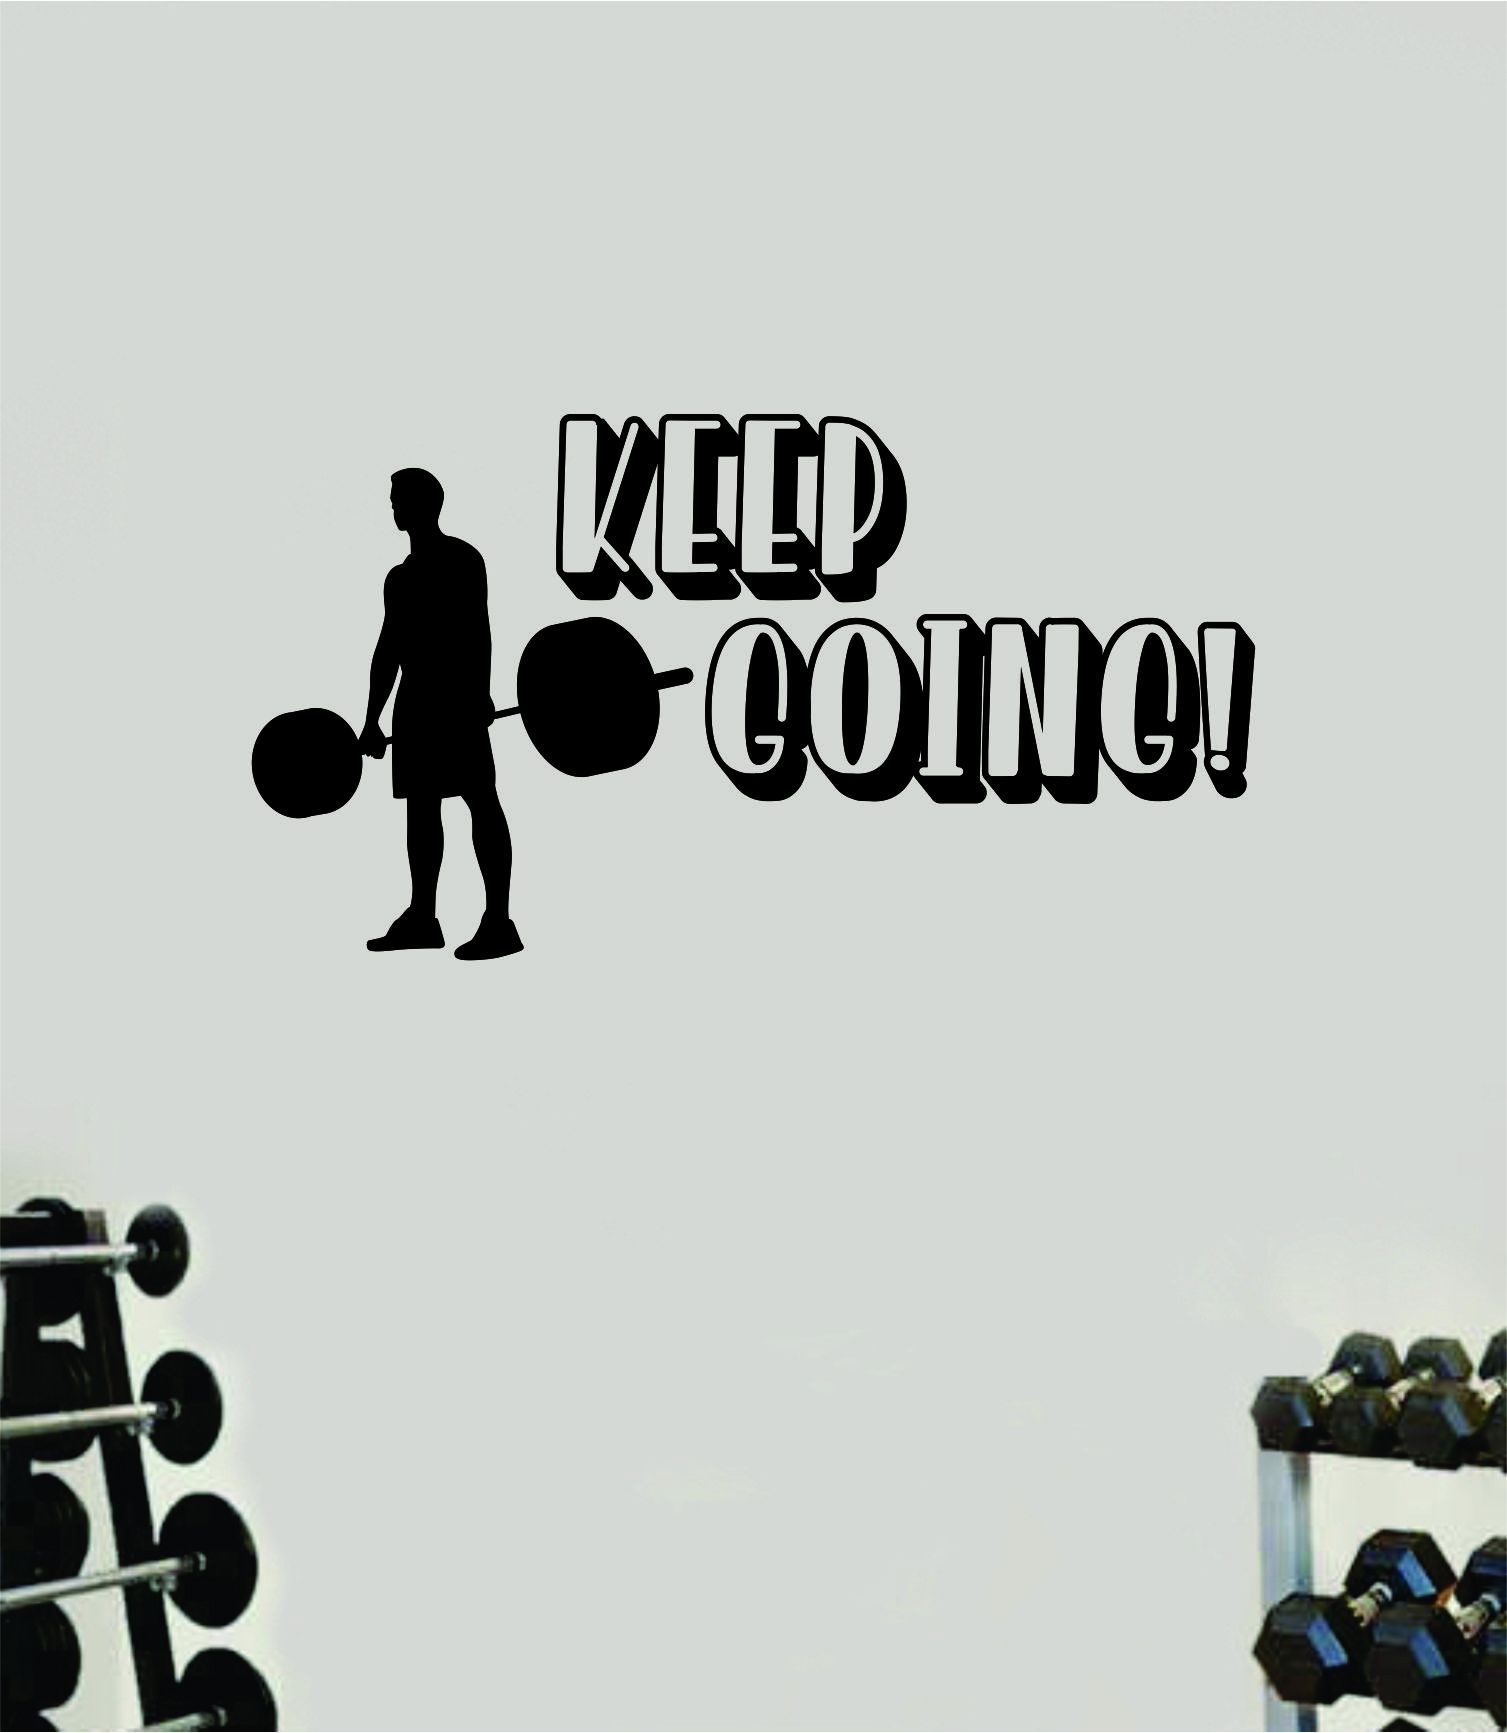 Keep Going V7 Wall Decal Home Decor Bedroom Room Vinyl Sticker Art Teen Work Out Quote Beast Gym Fitness Lift Strong Inspirational Motivational Health - brown